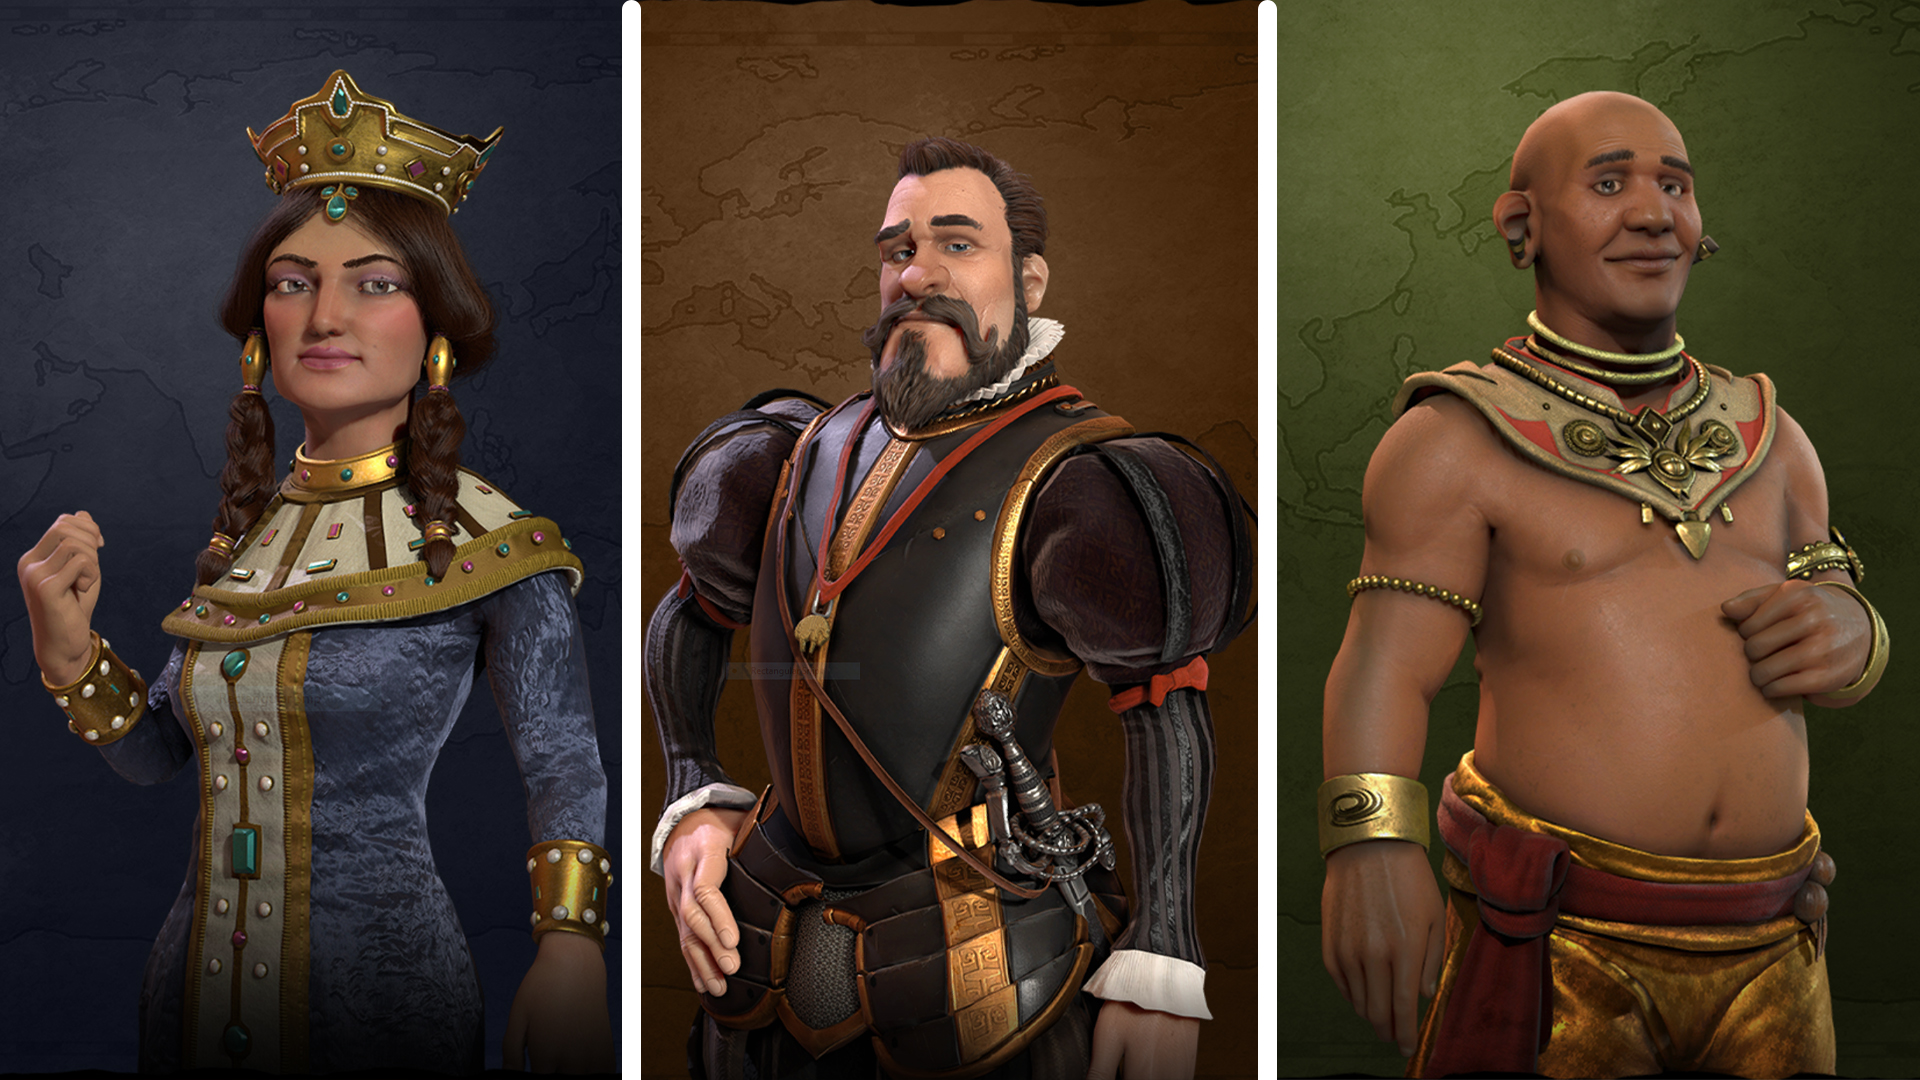 Civ 6's April patch brings welcome balance to a complex 4X game